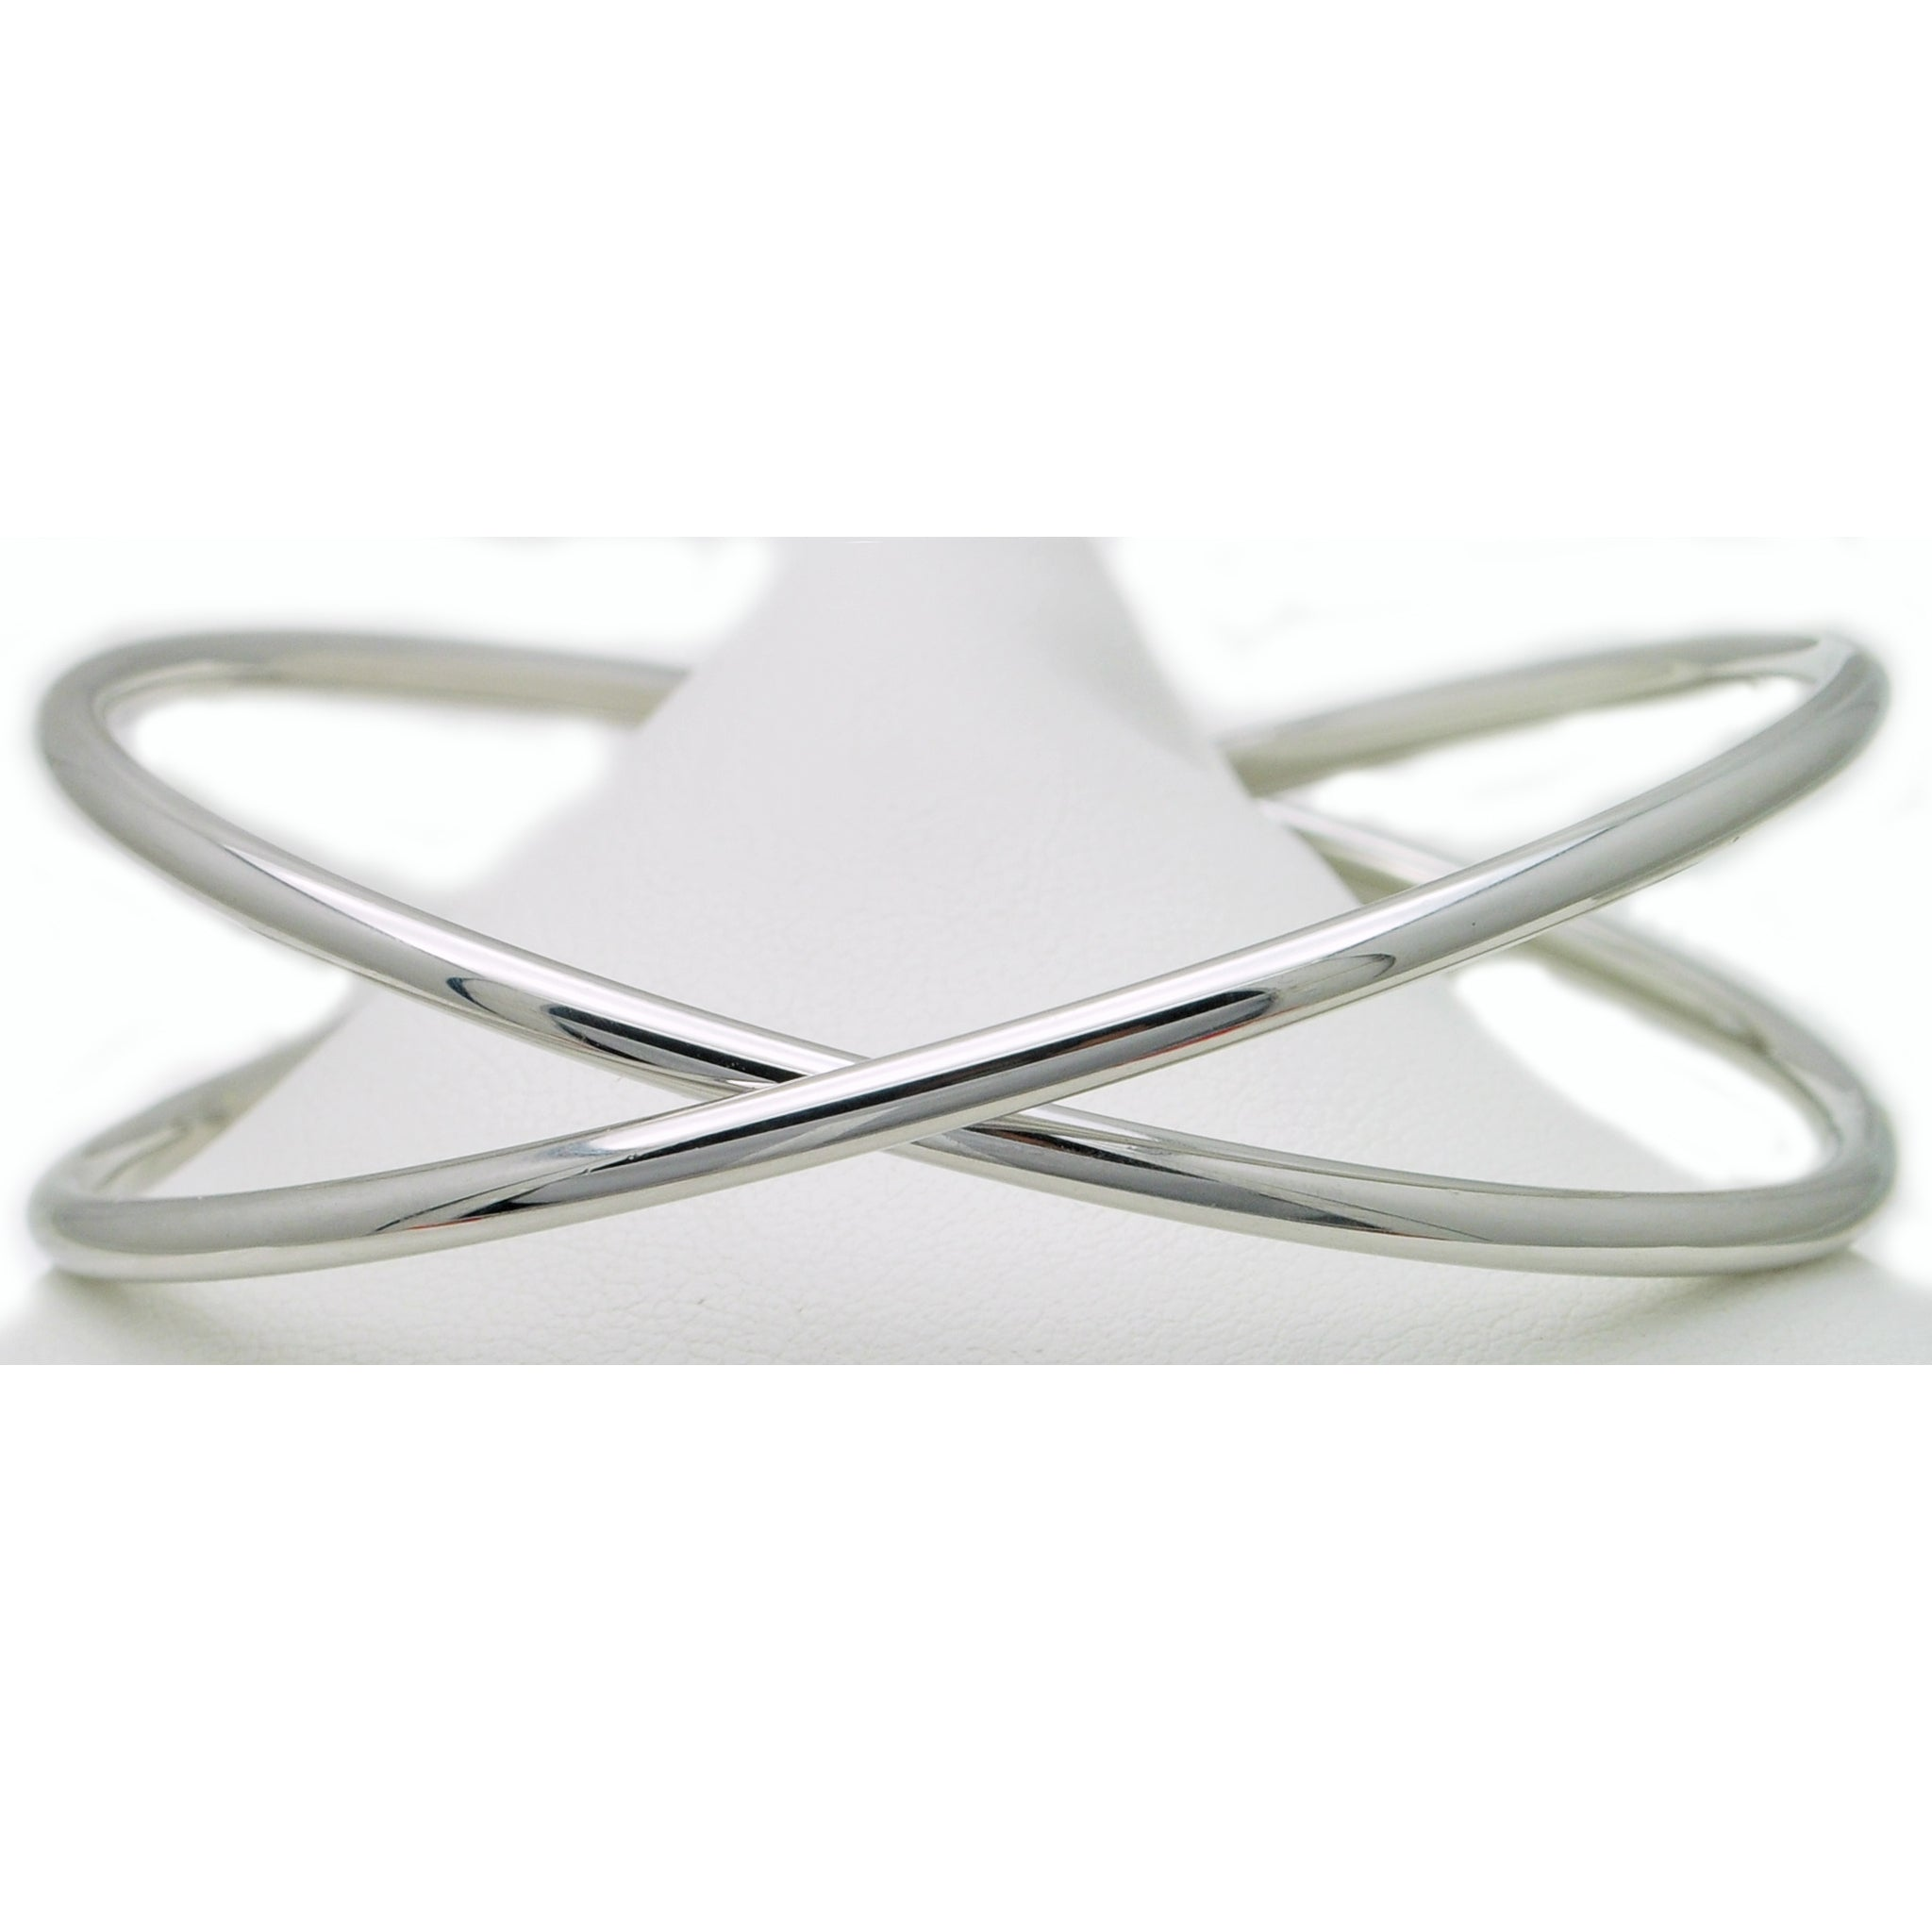 Silver Bracelets - Criss Cross Sterling Silver Bangle Bracelets